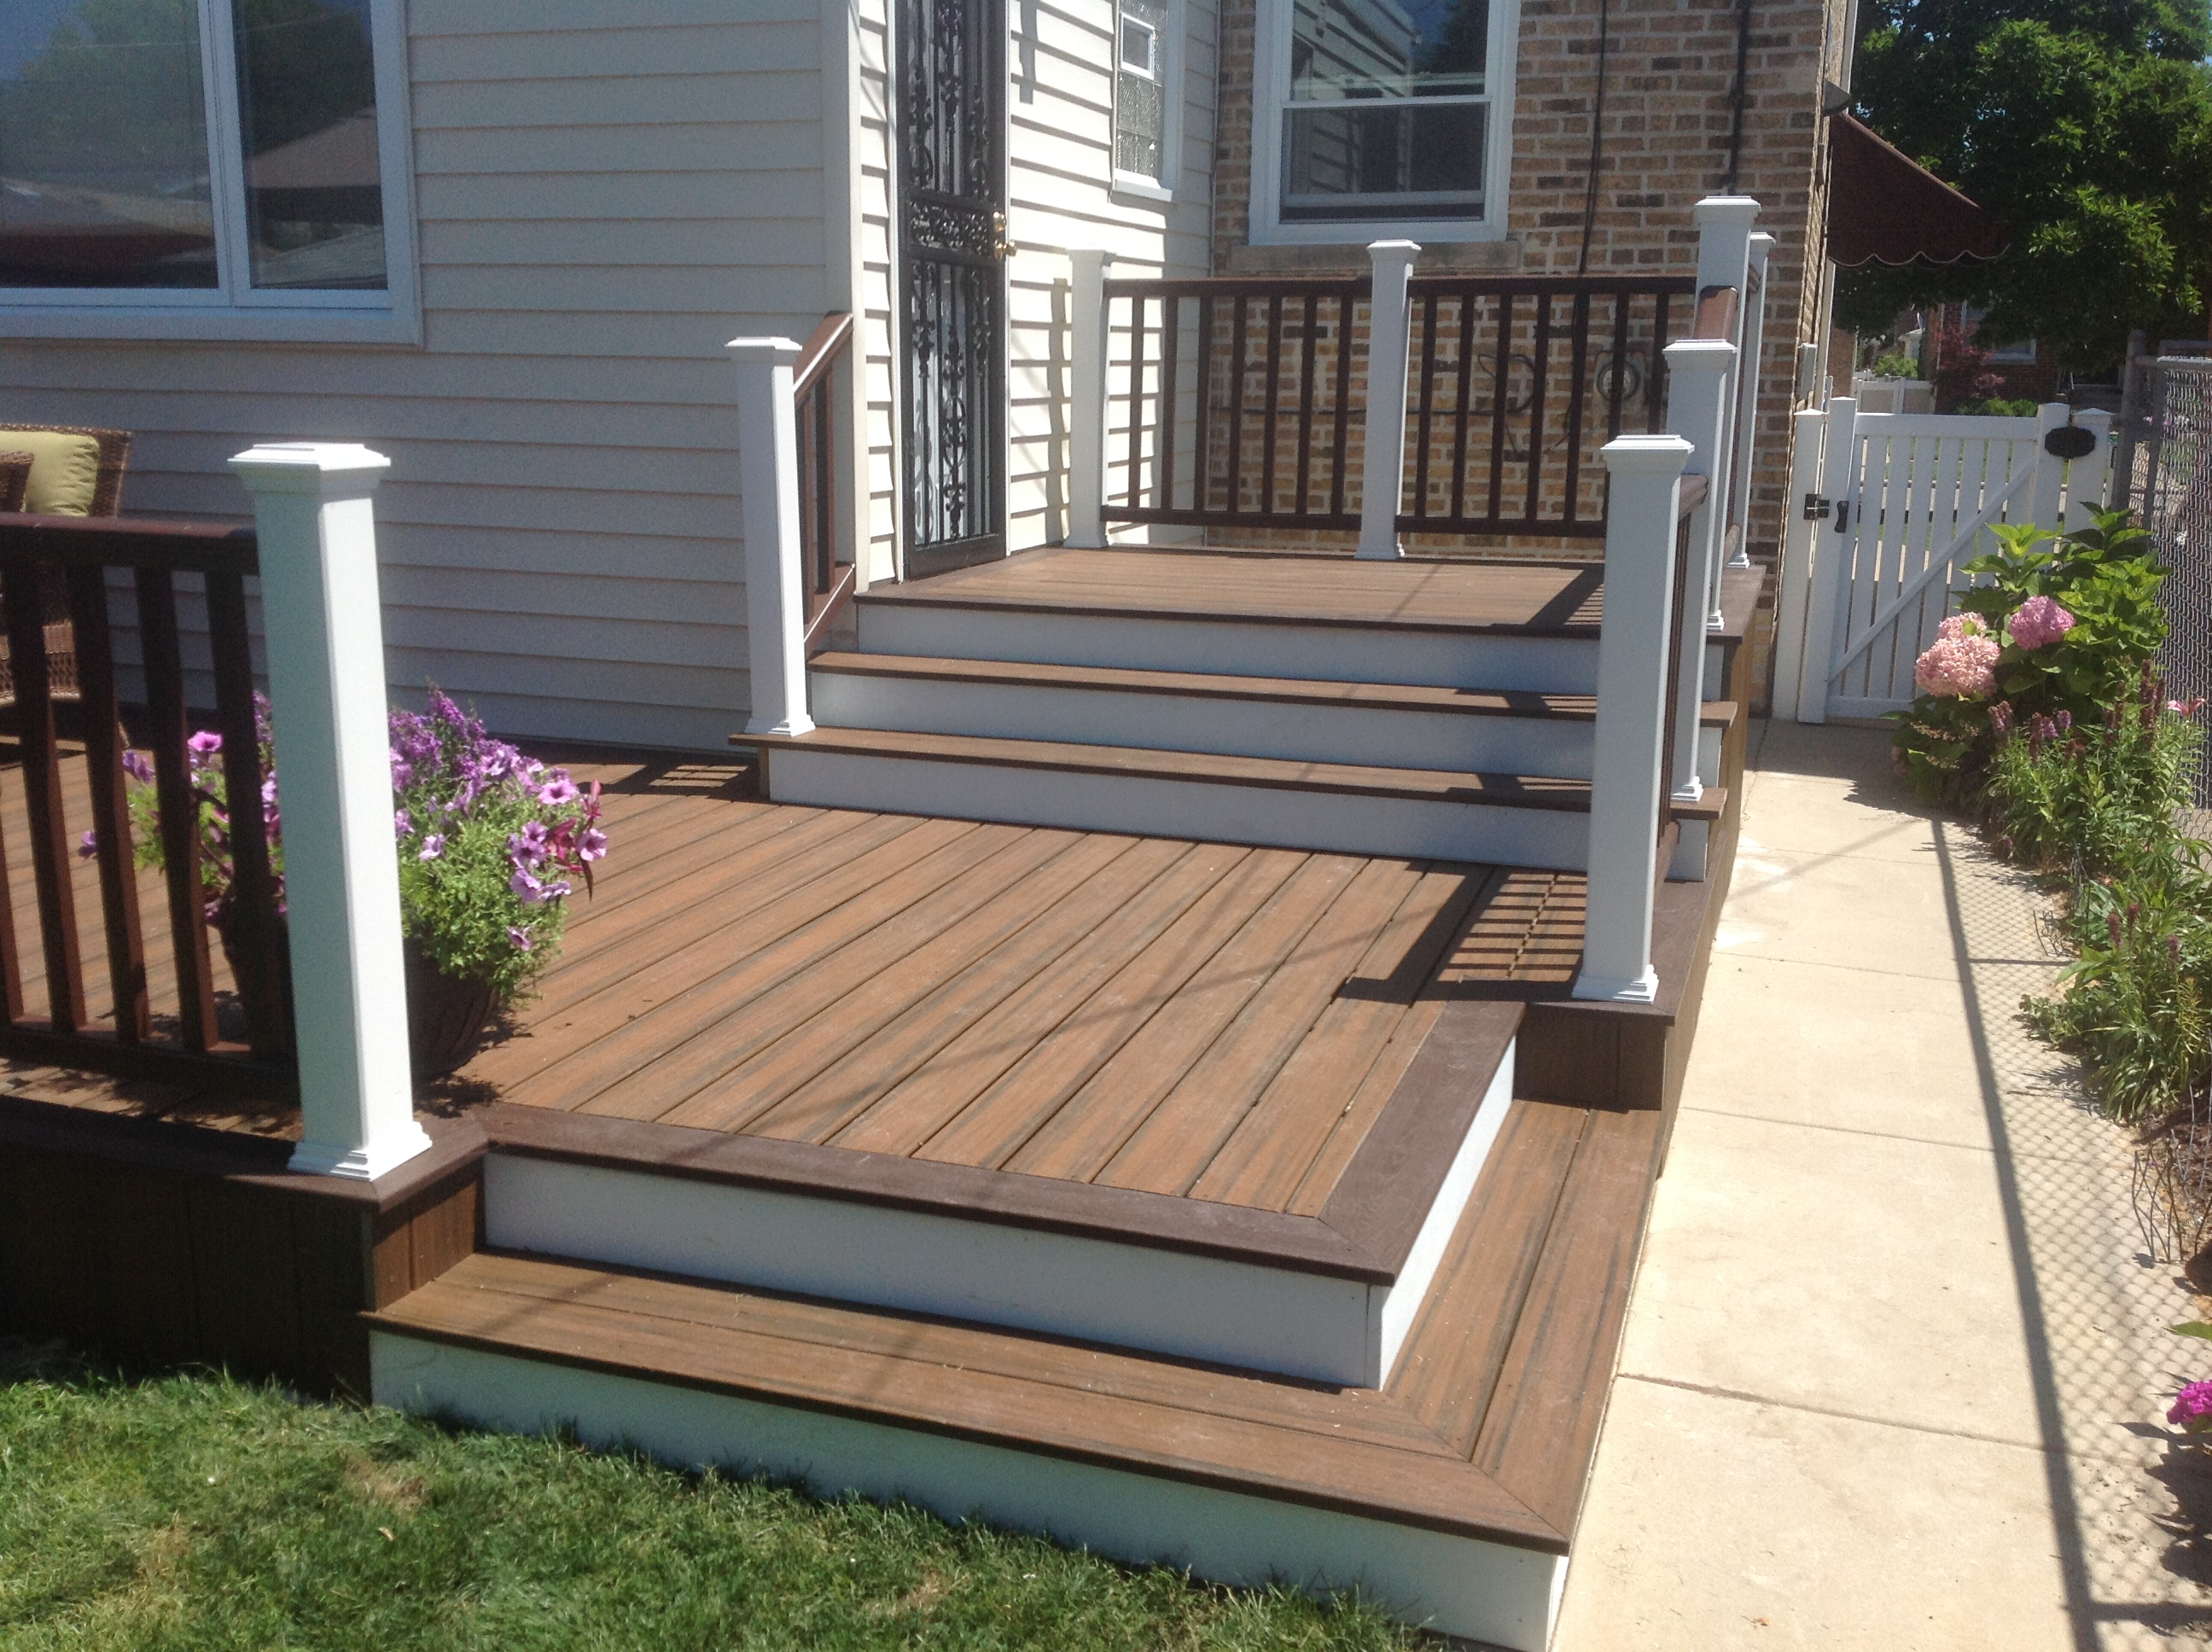 Choosing The Right Deck Stain Colors Rustic Woodmen Decks intended for proportions 2592 X 1936